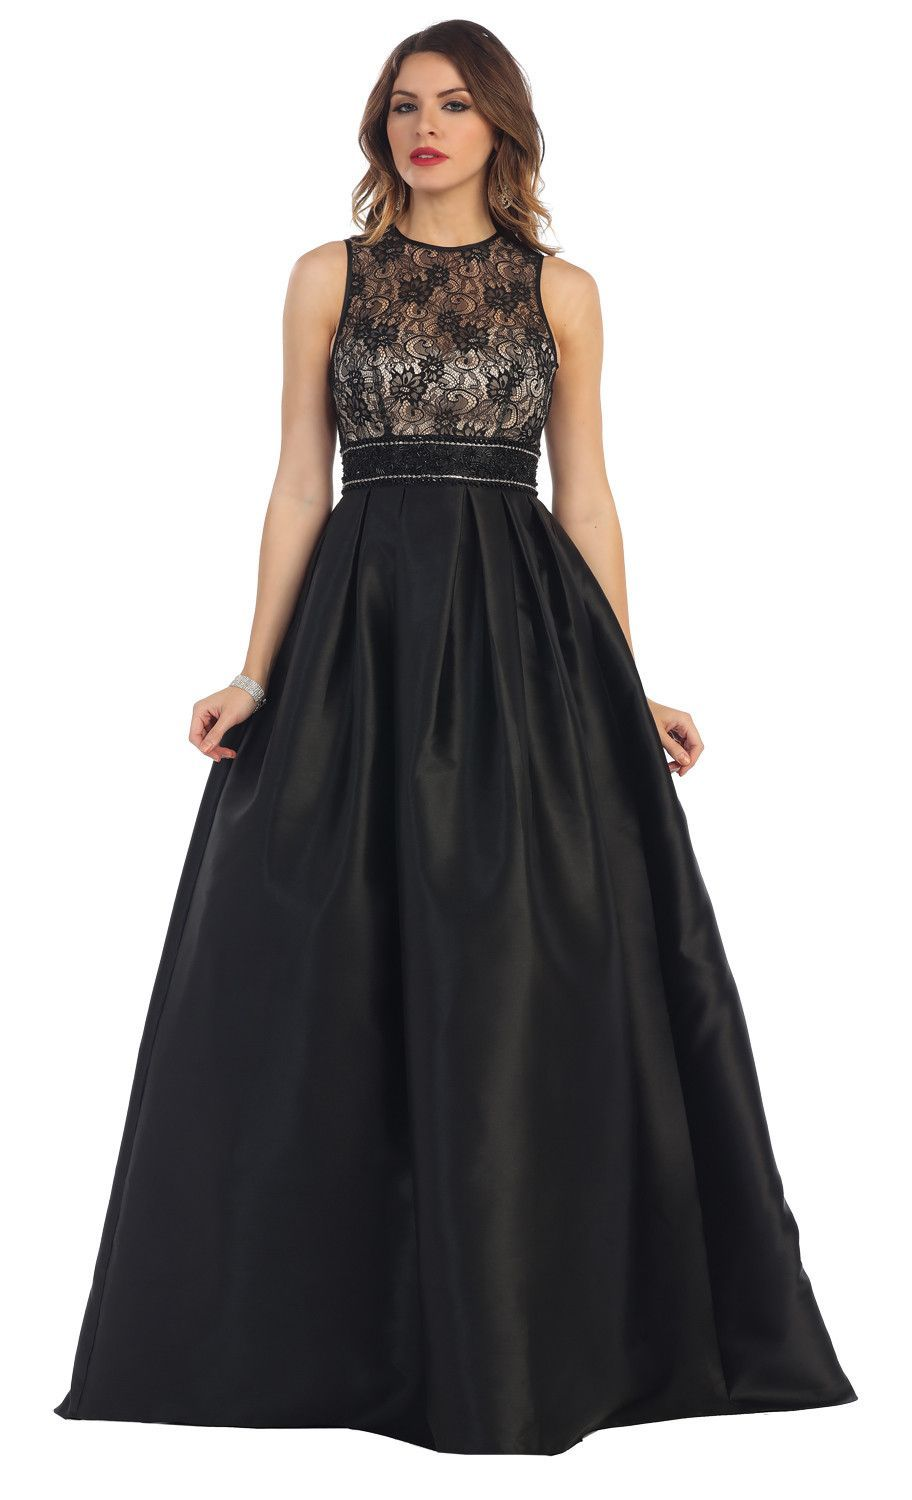 Long Prom Ball Gown Cocktail Formal Evening Dress Gowns Black Prom Dress Ball Gown Prom Dresses Ball Gown